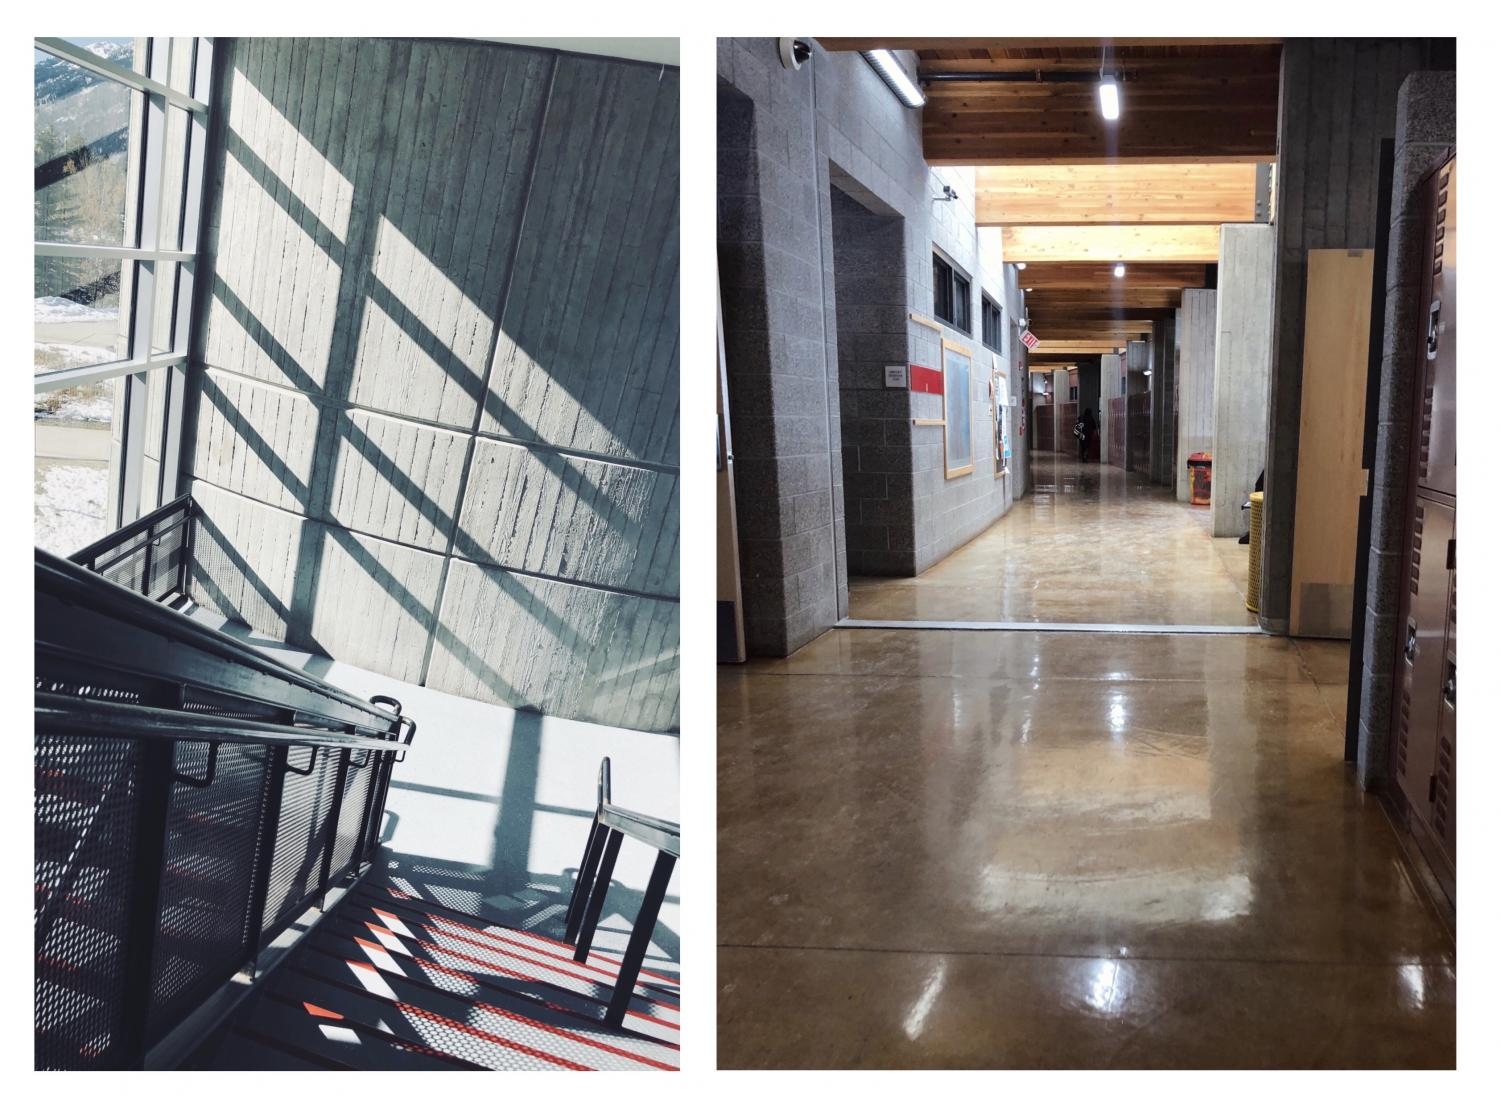 The hallway and the stairs are two places at AHS where students can take a break during the day.